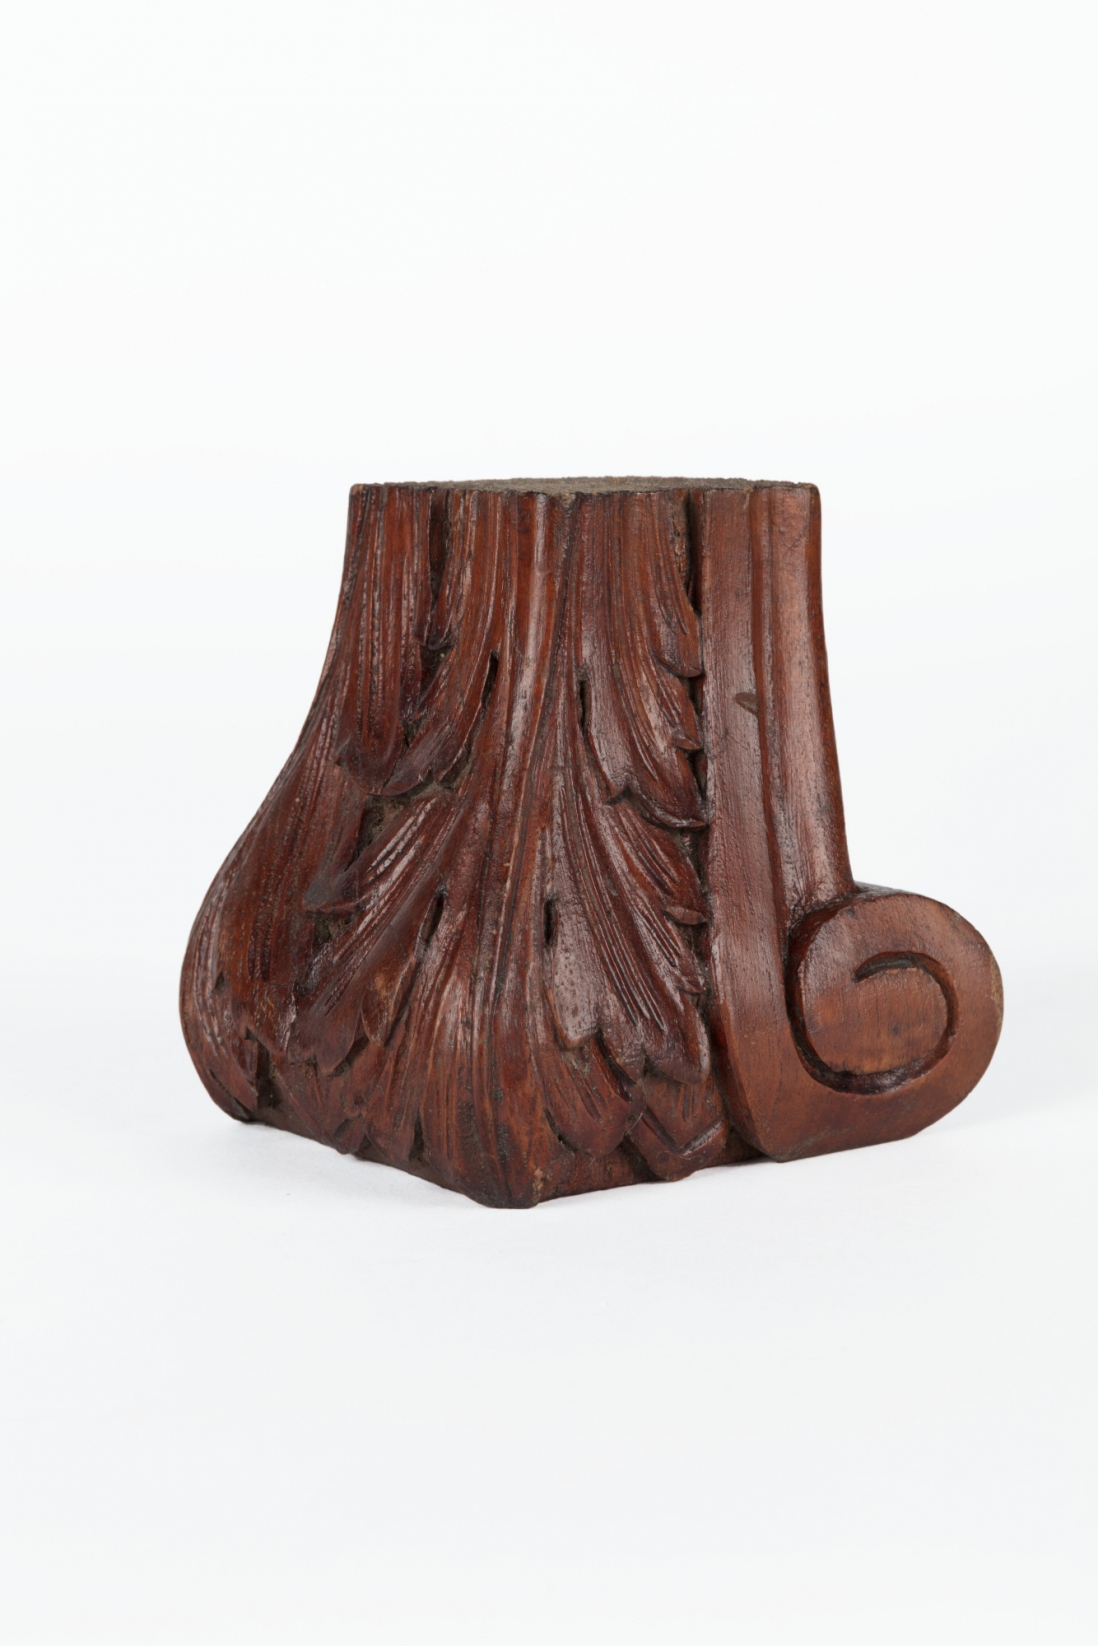 A carved timber furniture foot